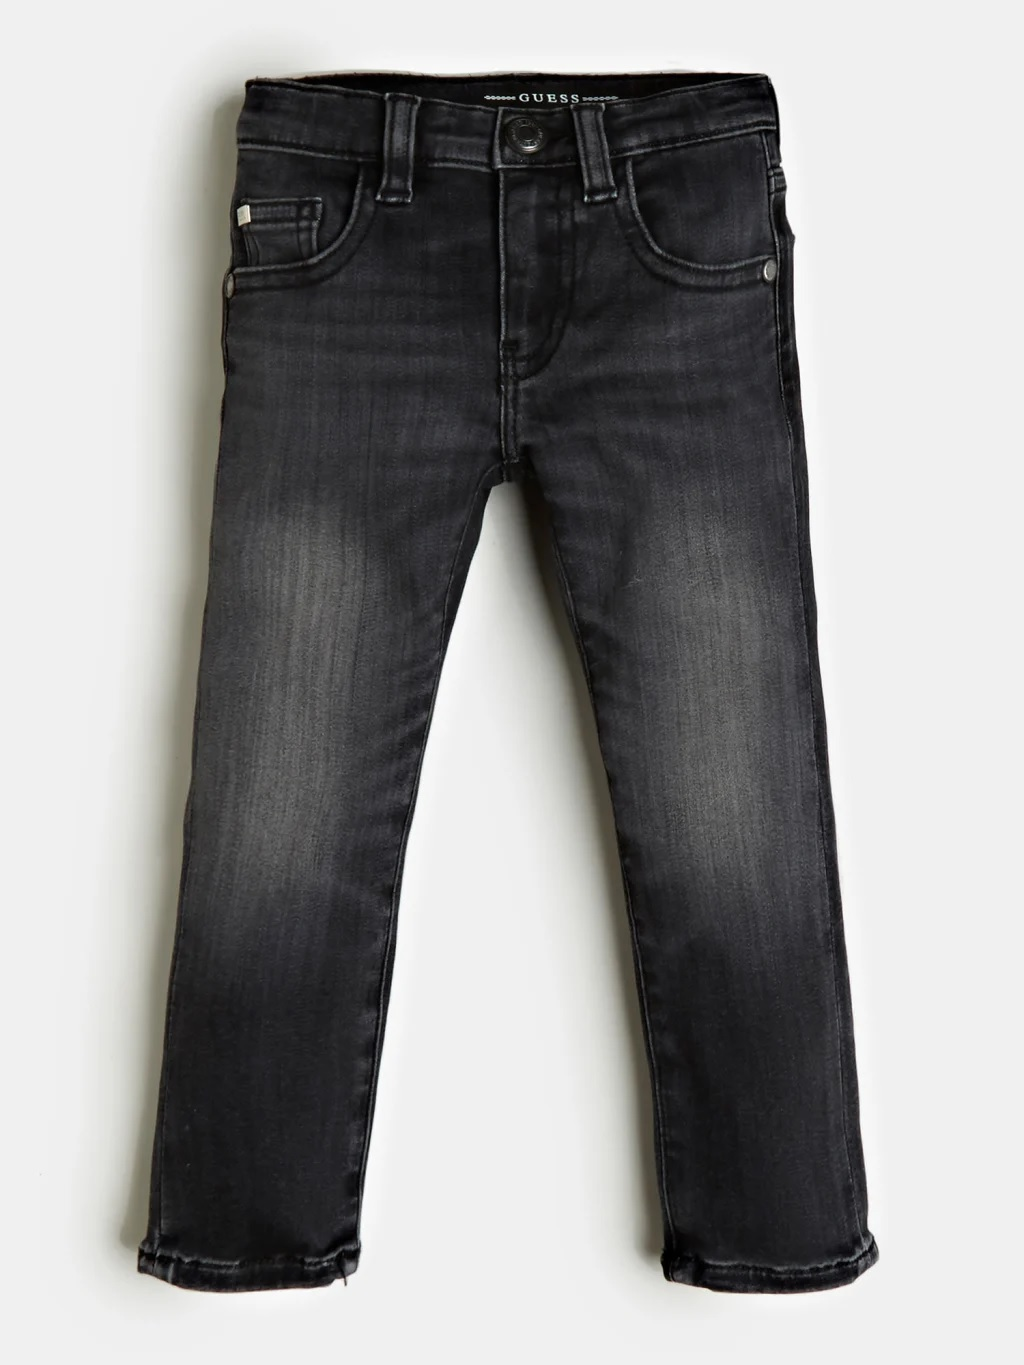 JEANS GUESS GUESS   Jeans   N0BA00D465AXTRW